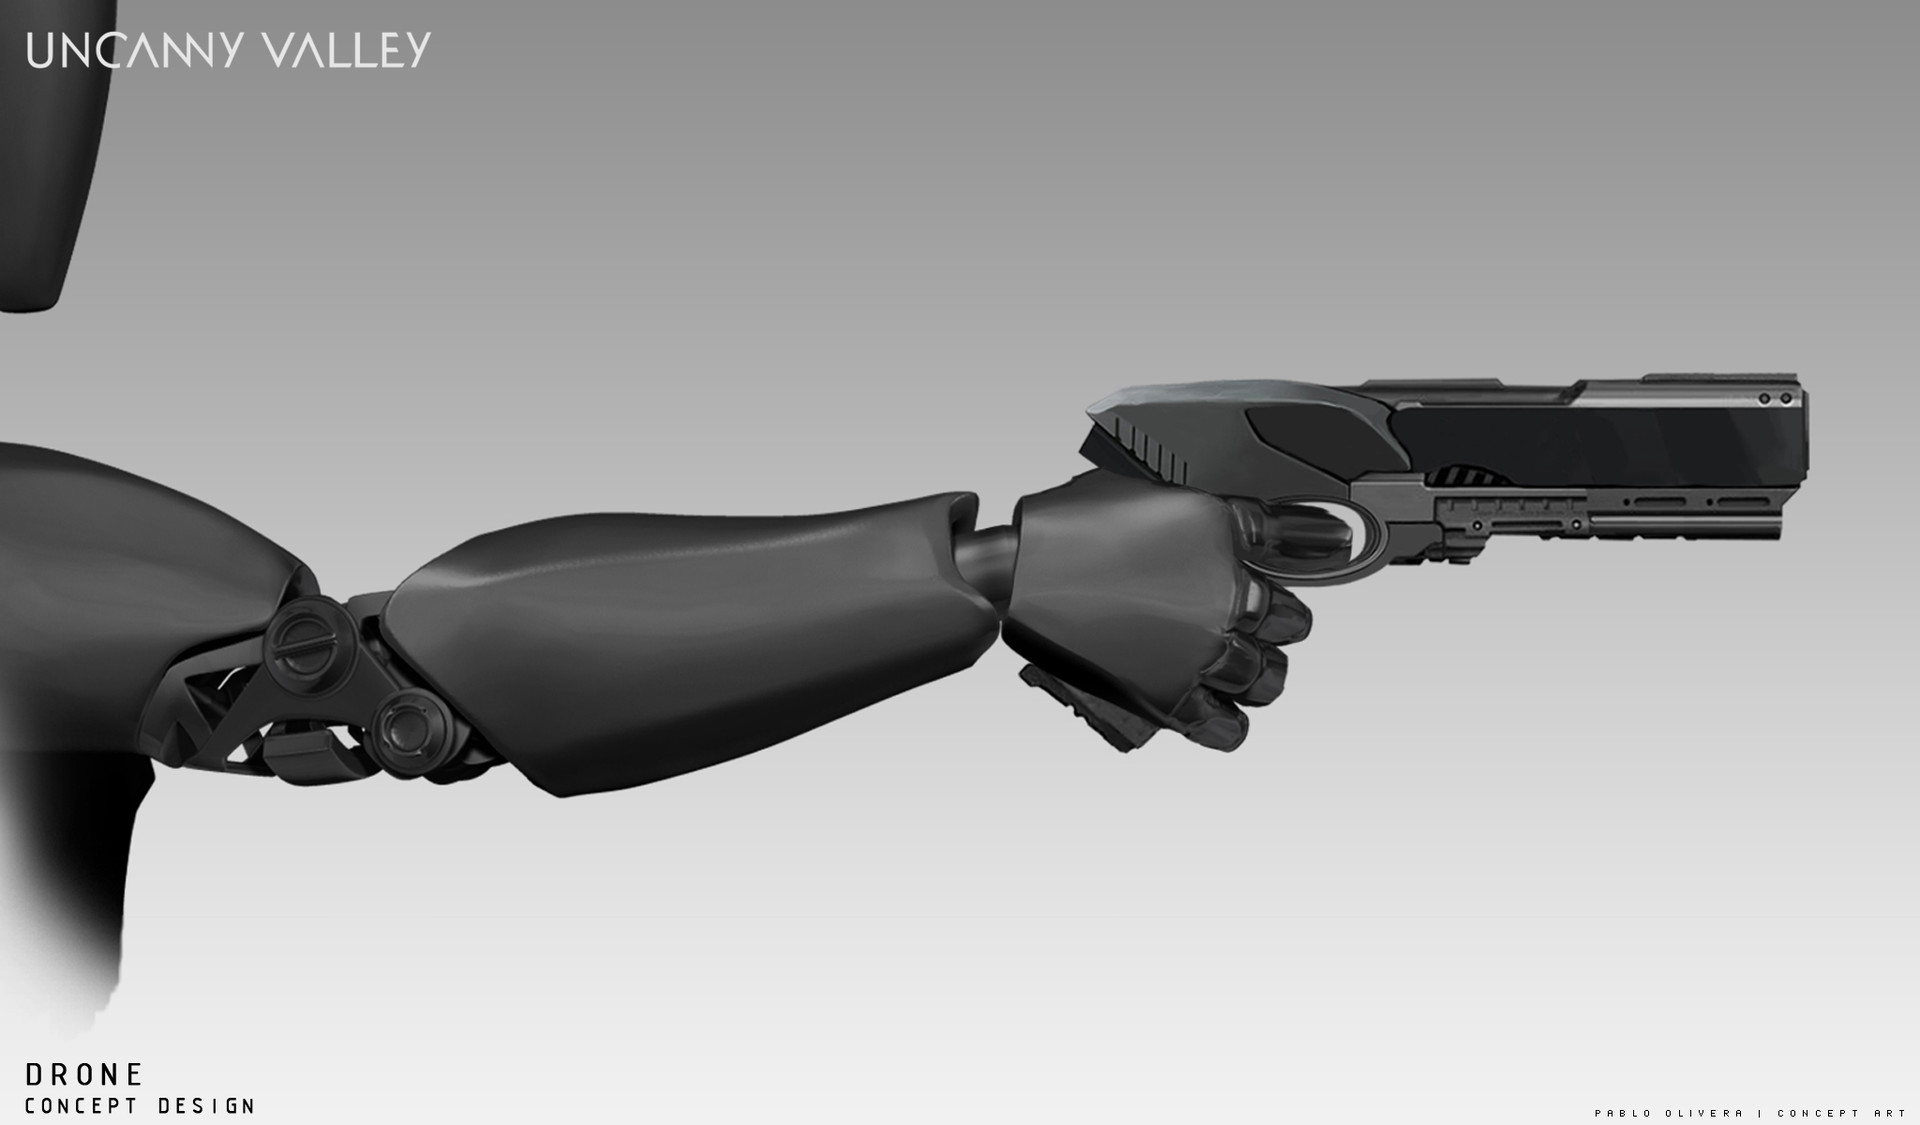 Pablo olivera uncanny valley weapons 09 apuntando